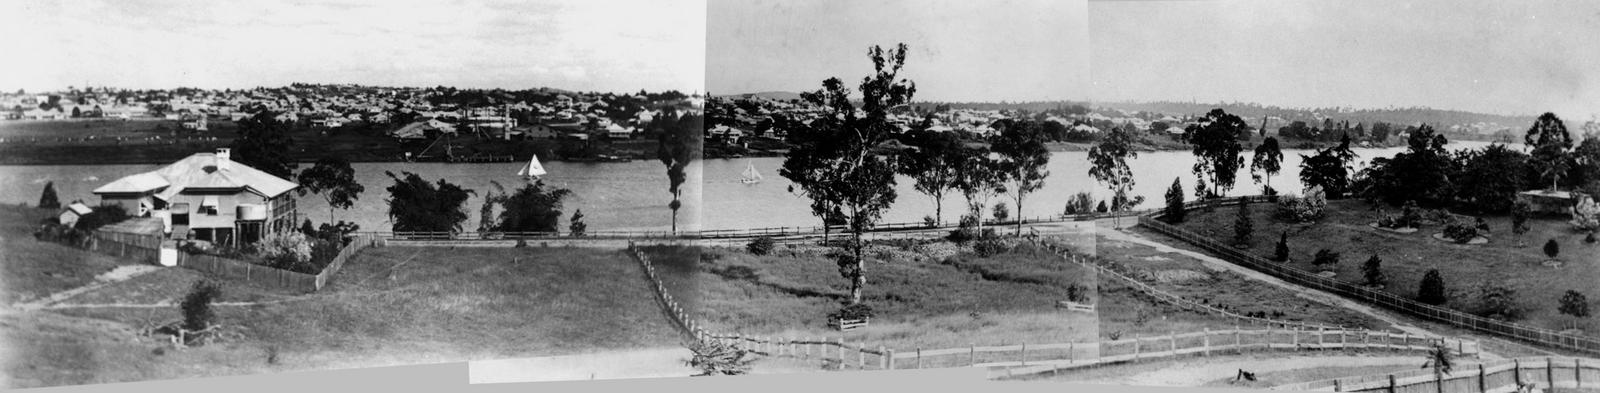 Panorama from Dunmore Terrace, 1910. (State Library of Queensland, Negatives 183967, 183958 and 183970)